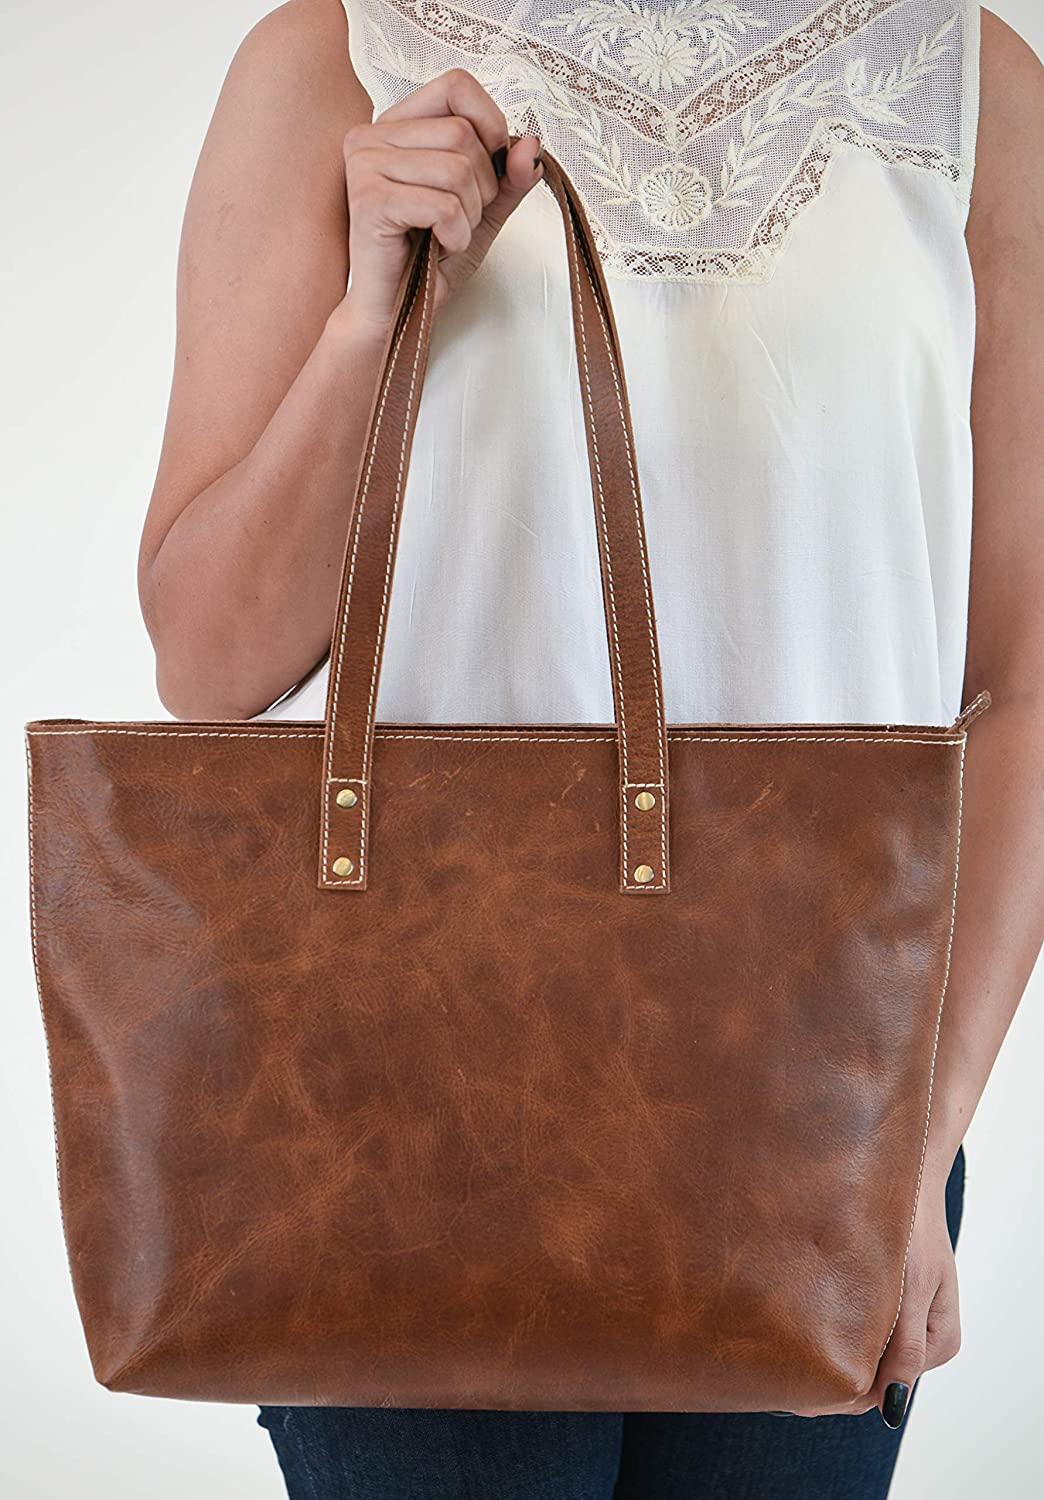 New Vintage Women leather handbags solid Woven Tote fashion zipper shoulder bags